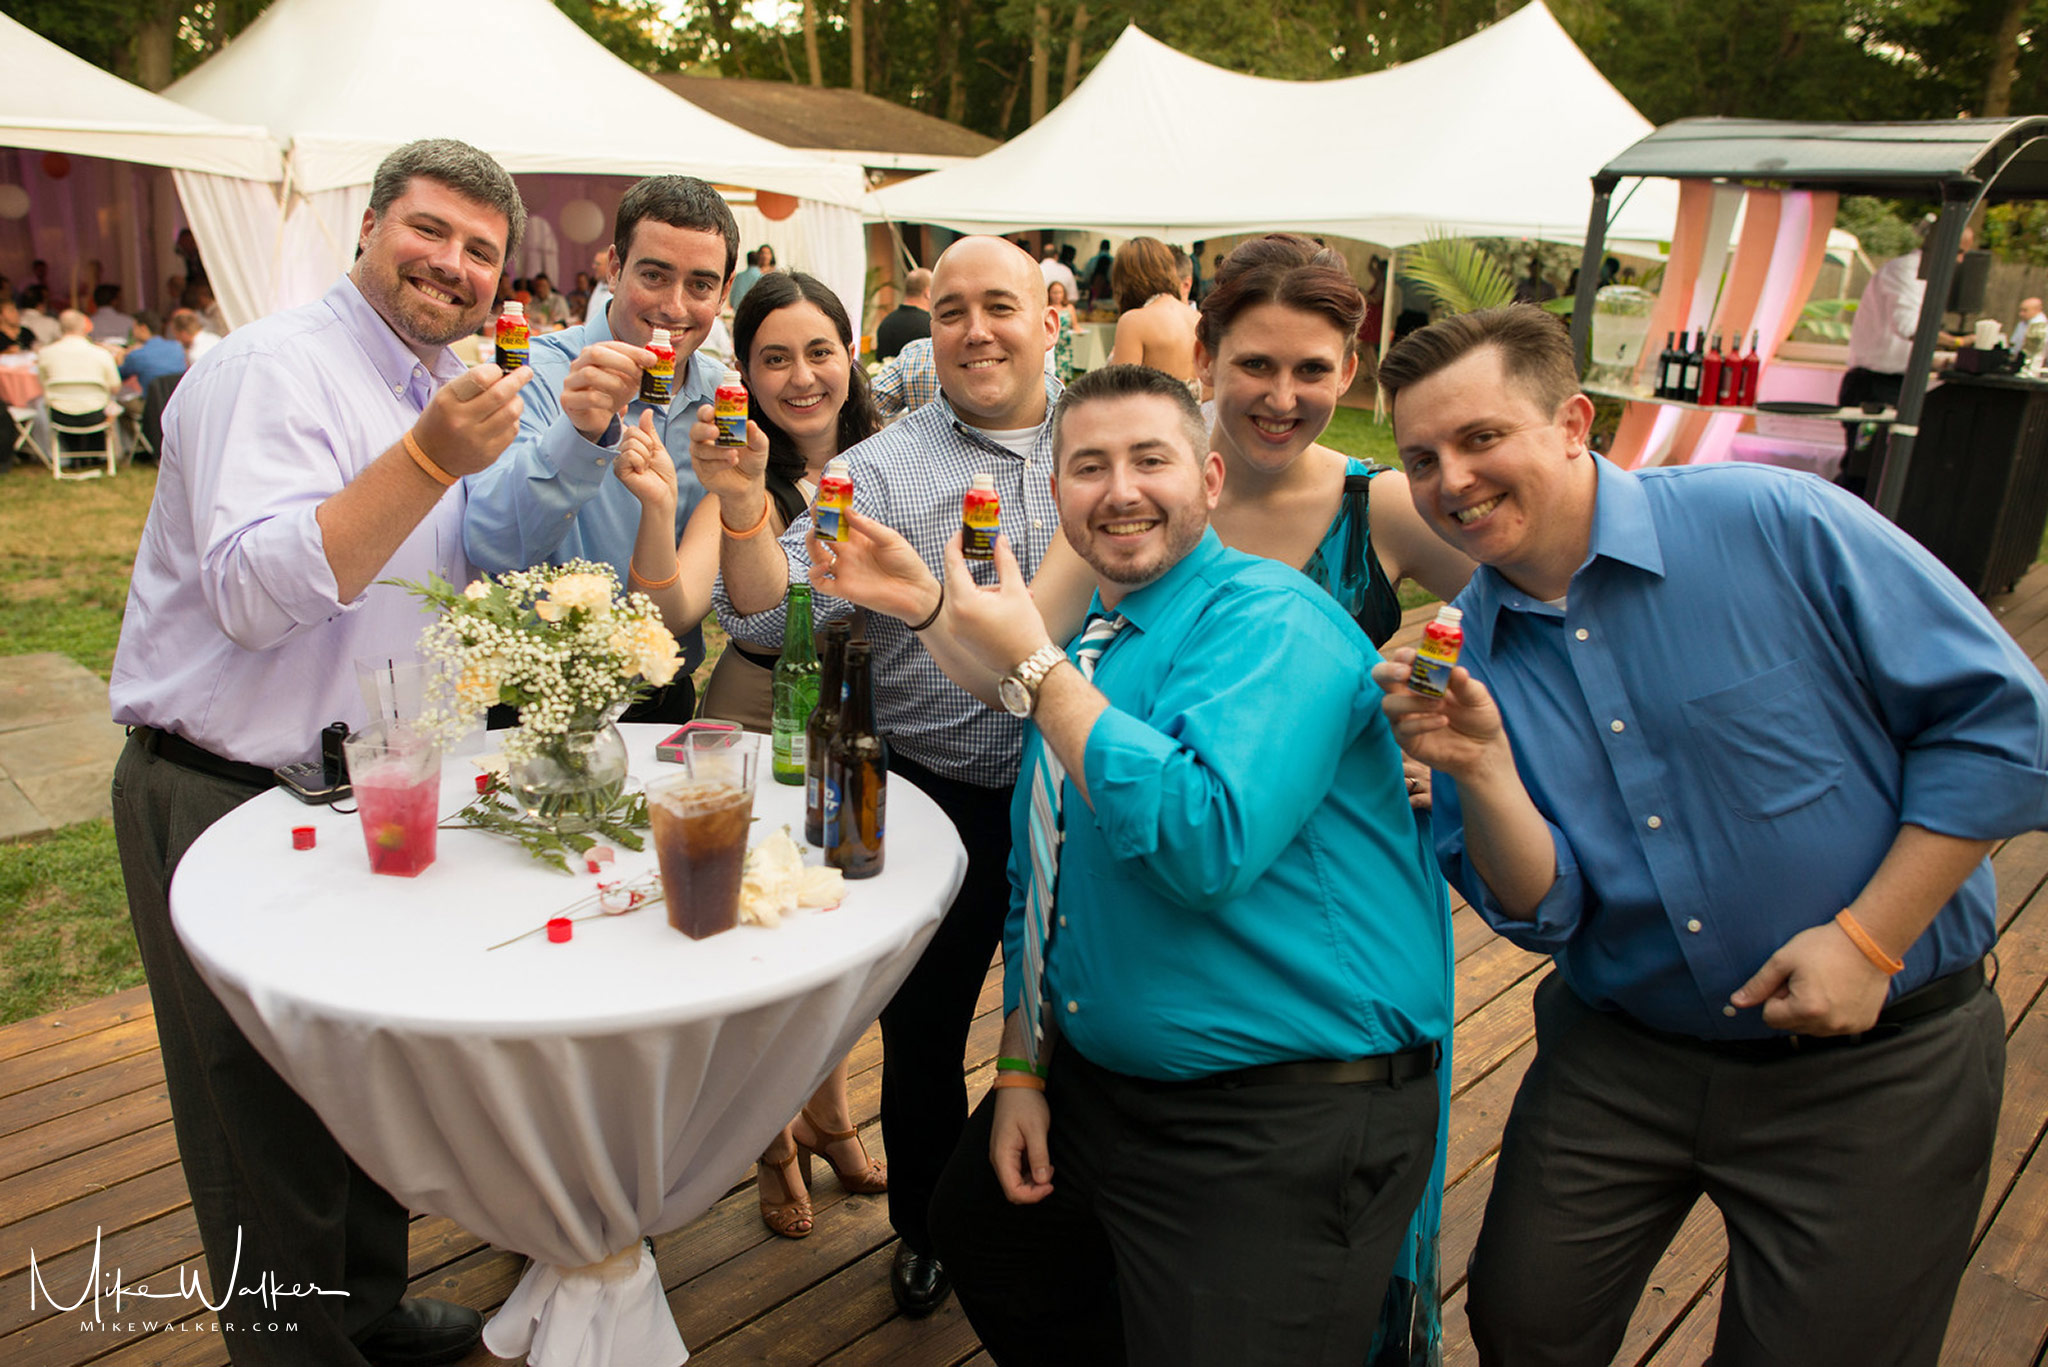 Group at a wedding doing 5-hour energy shots. Wedding photographer Mike Walker.